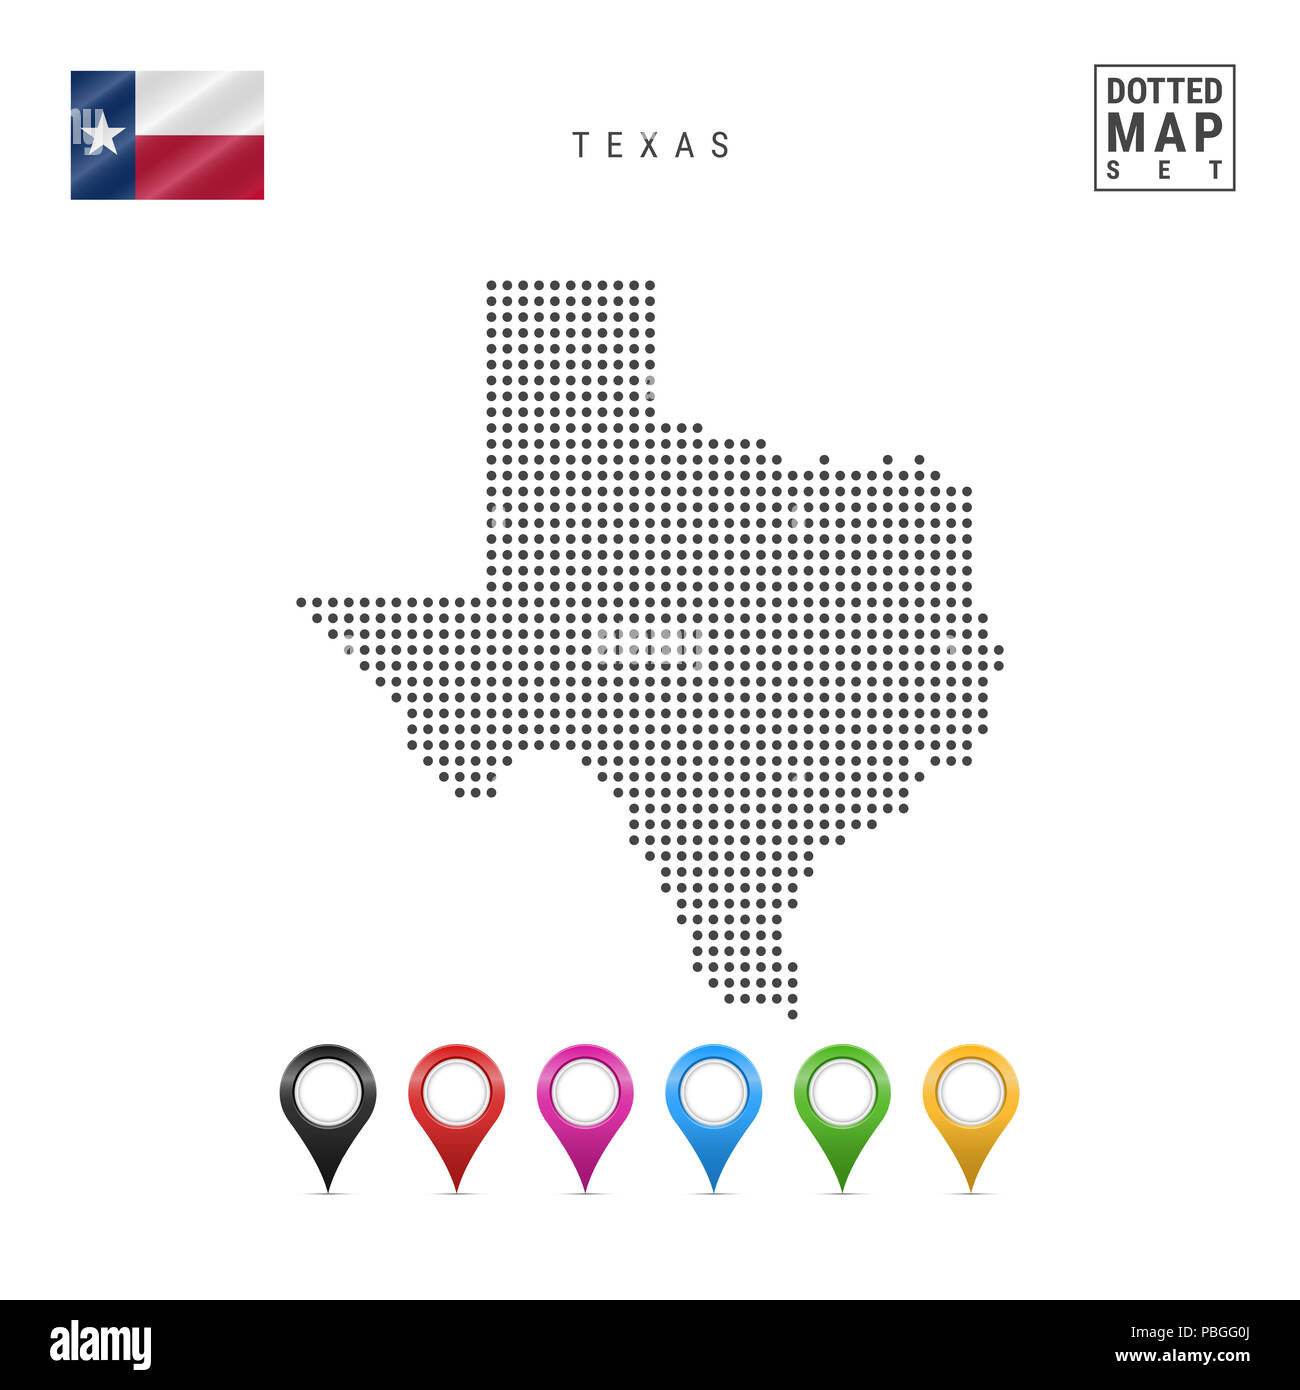 Texas Territory Stock Photos Images Alamy Gg Wiring Diagram Dots Pattern Map Of Stylized Simple Silhouette The Flag